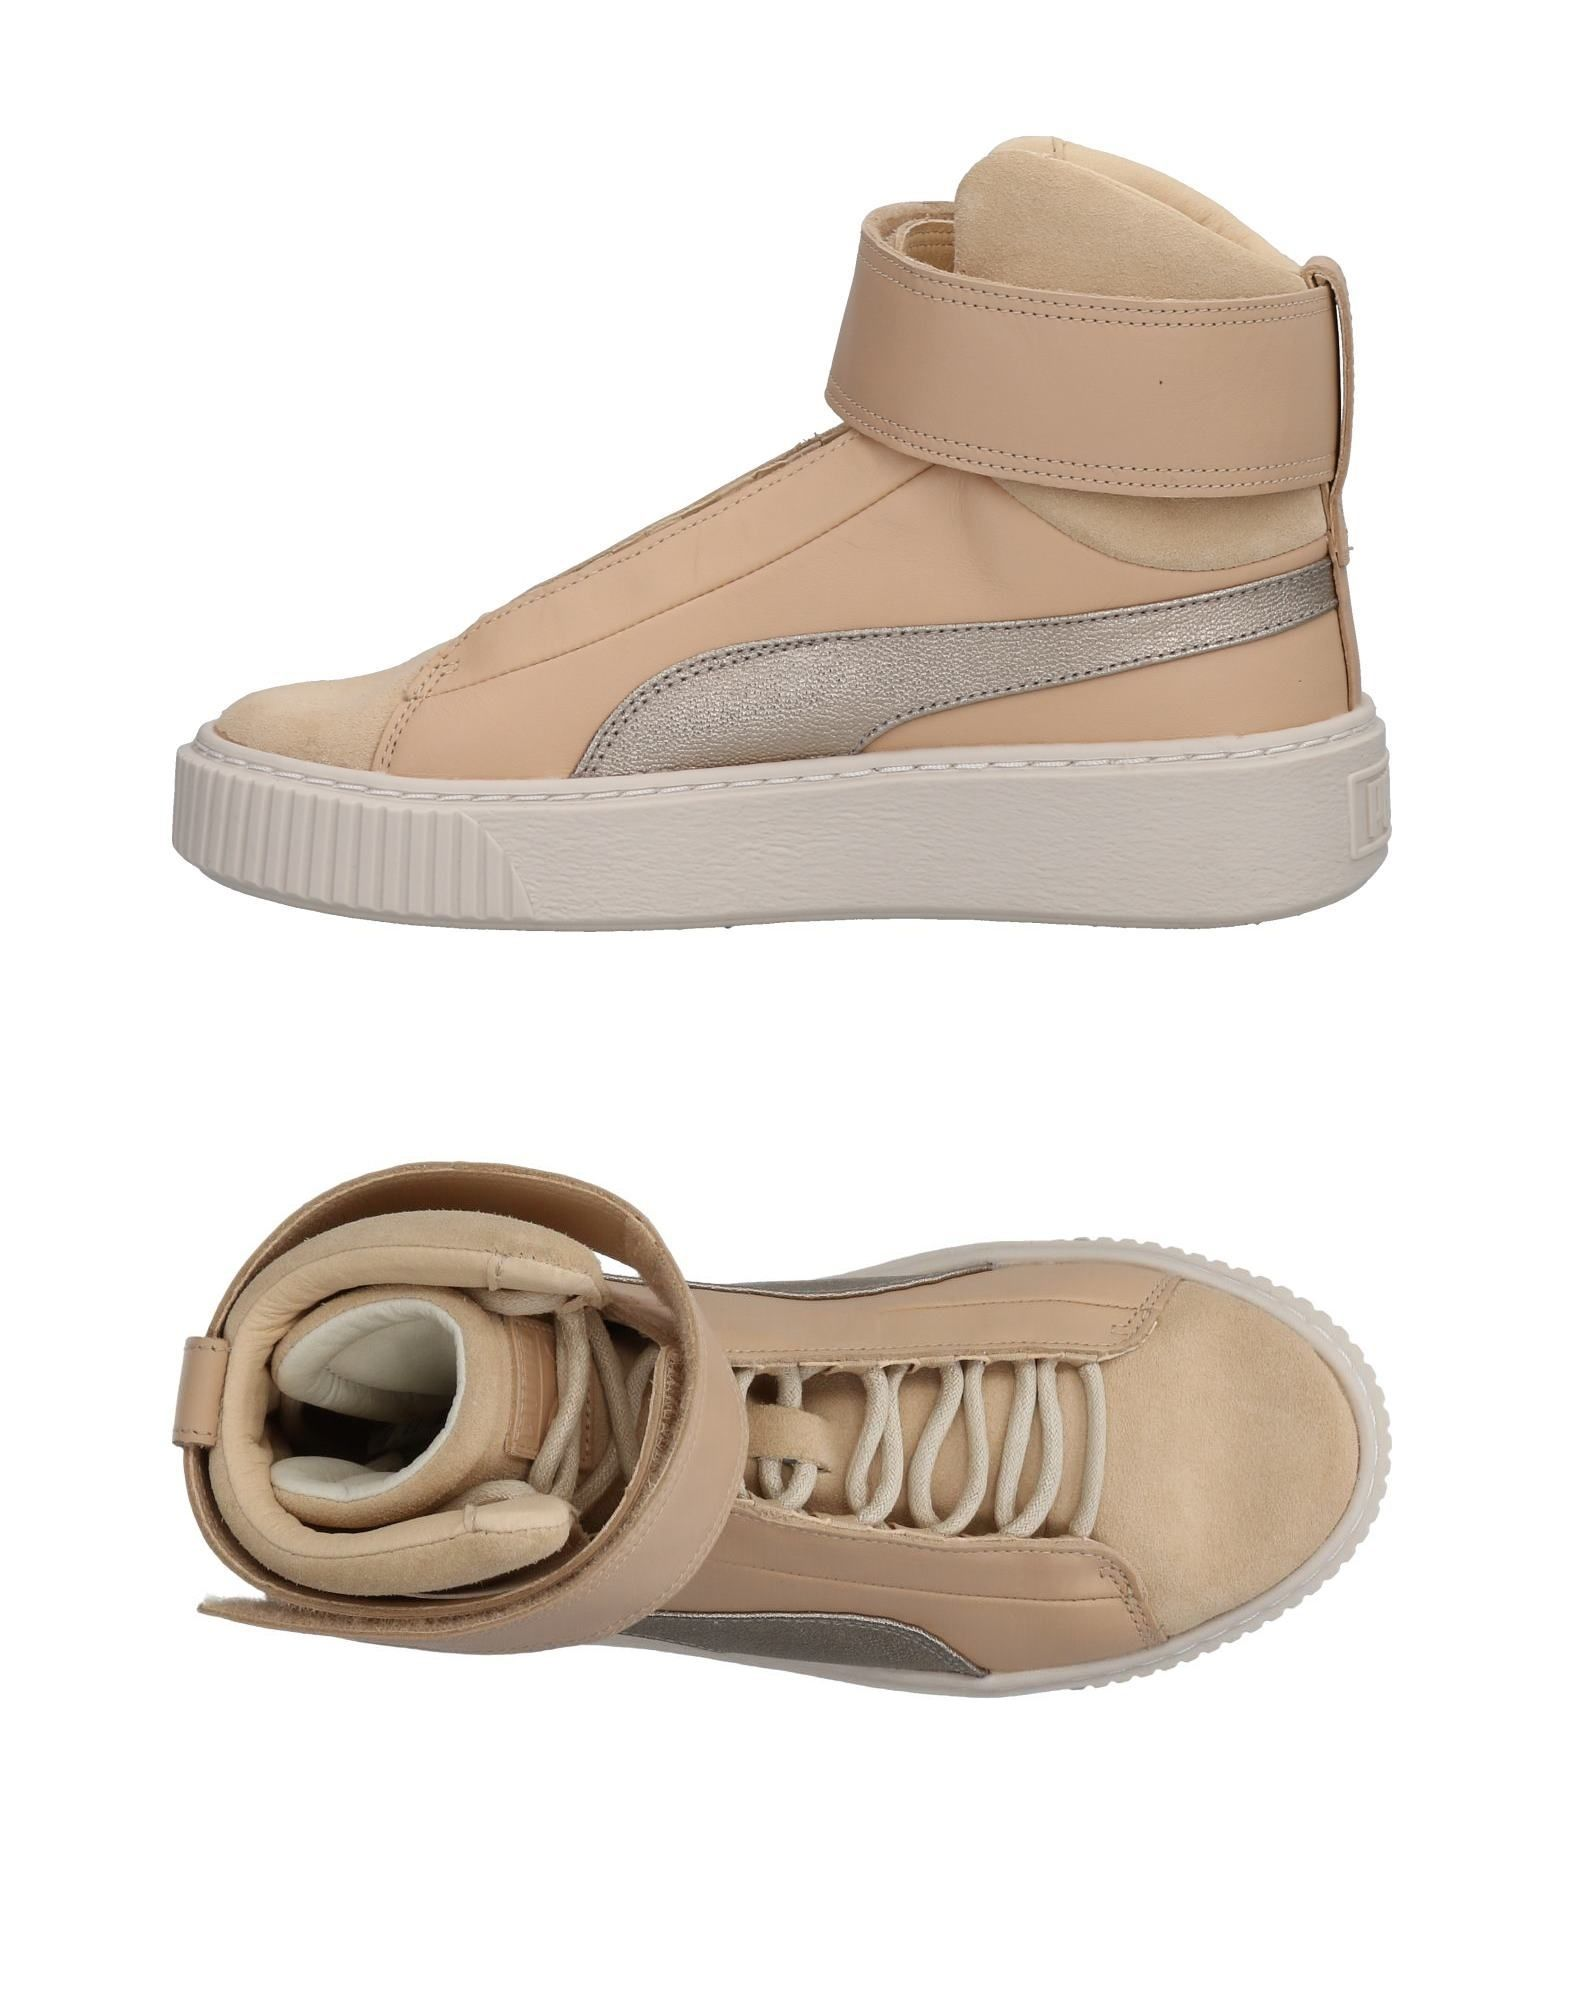 Puma Sneakers  - Women Puma Sneakers online on  Sneakers Canada - 11469447UI 0efdd1